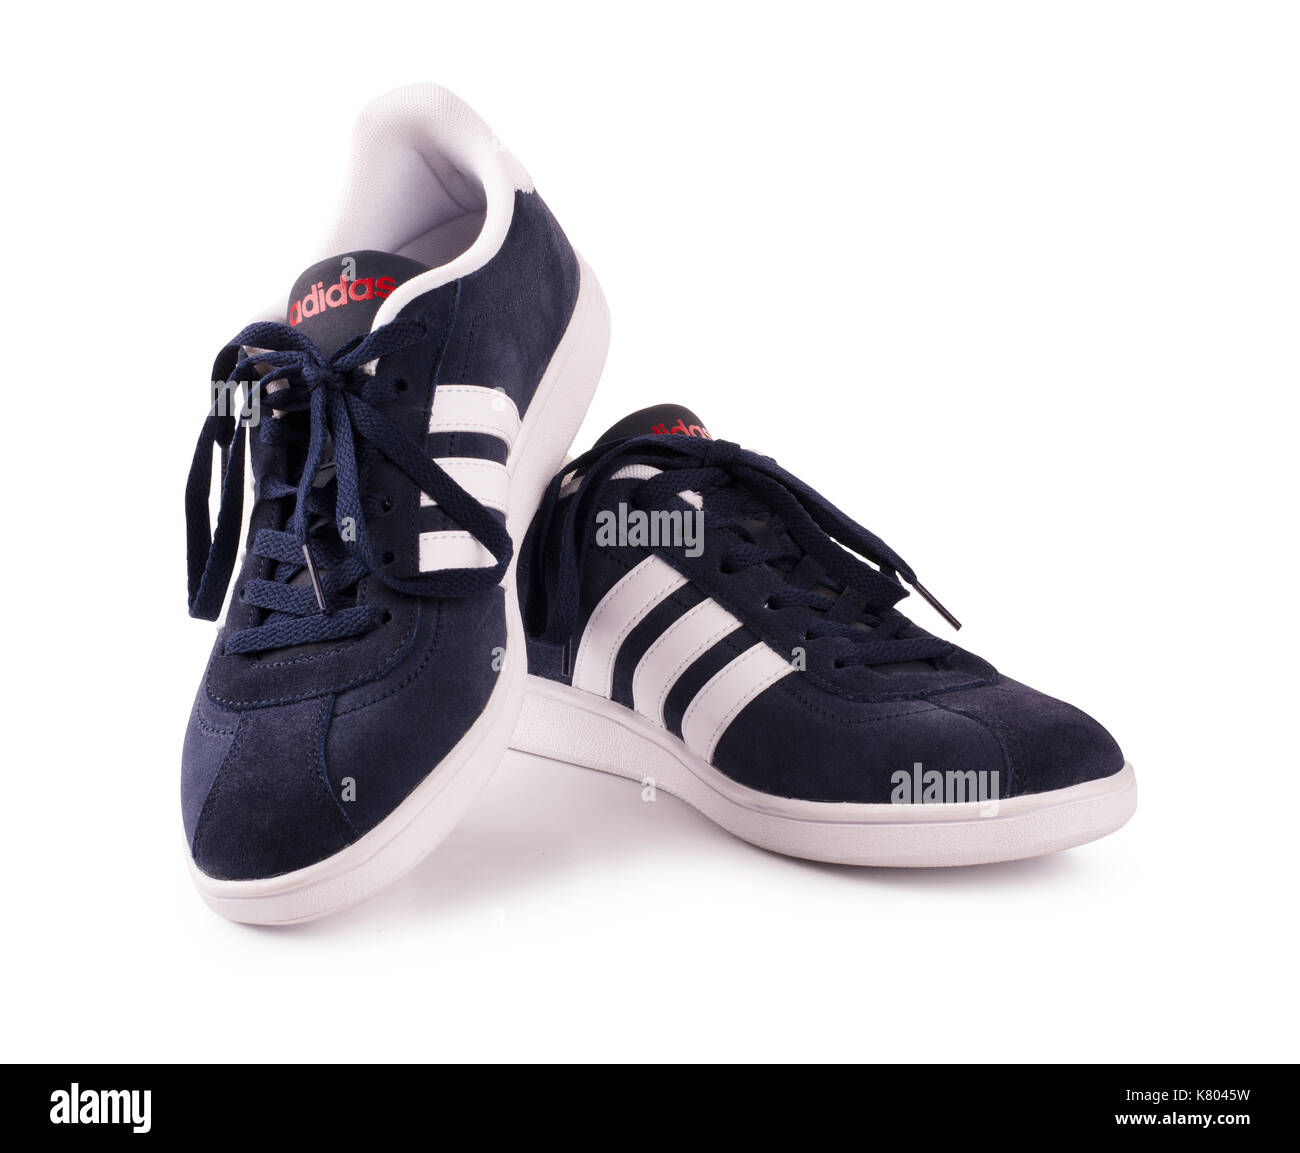 adidas chaussure russe